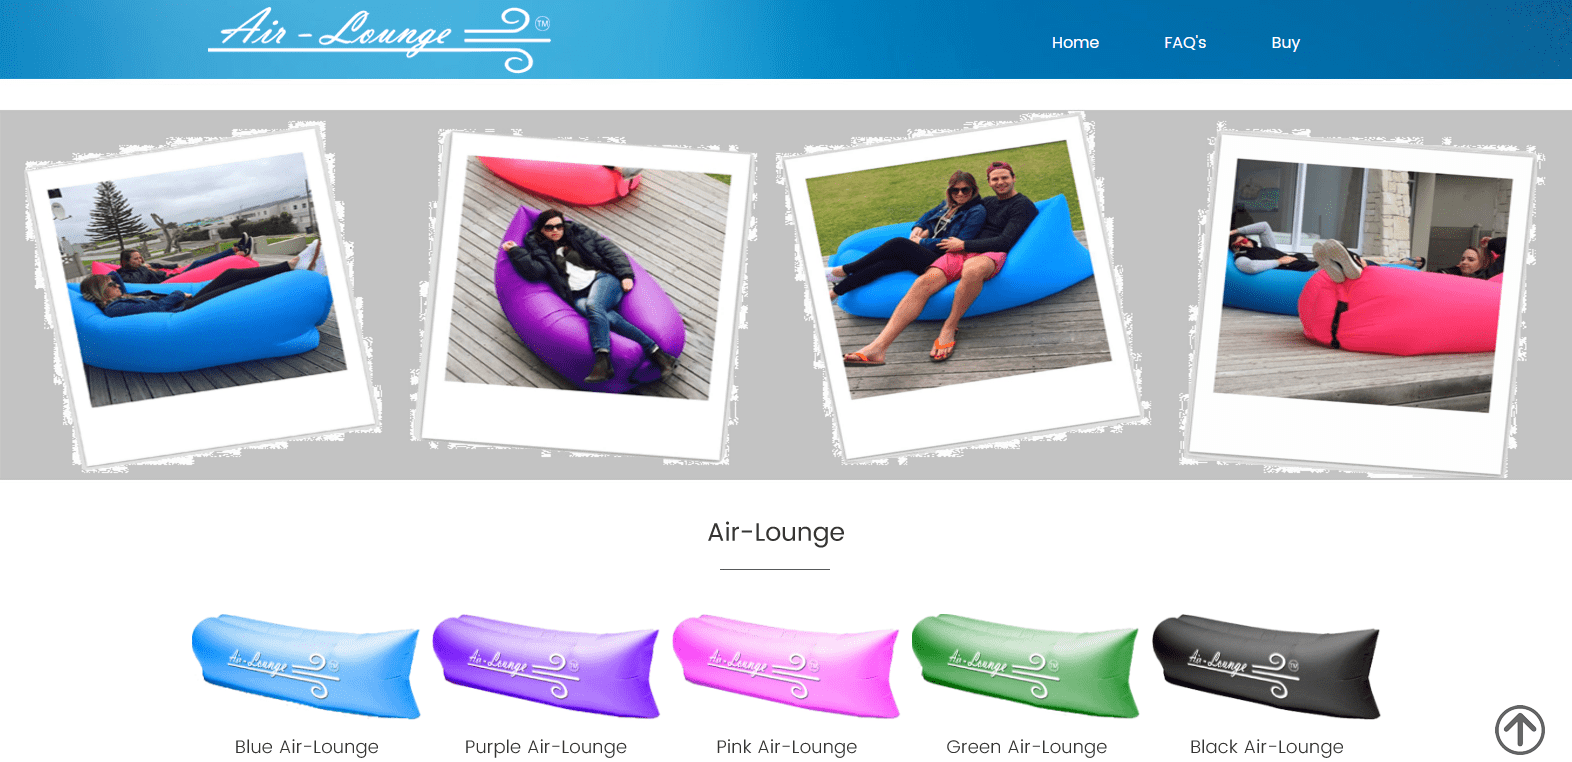 airlounge.org